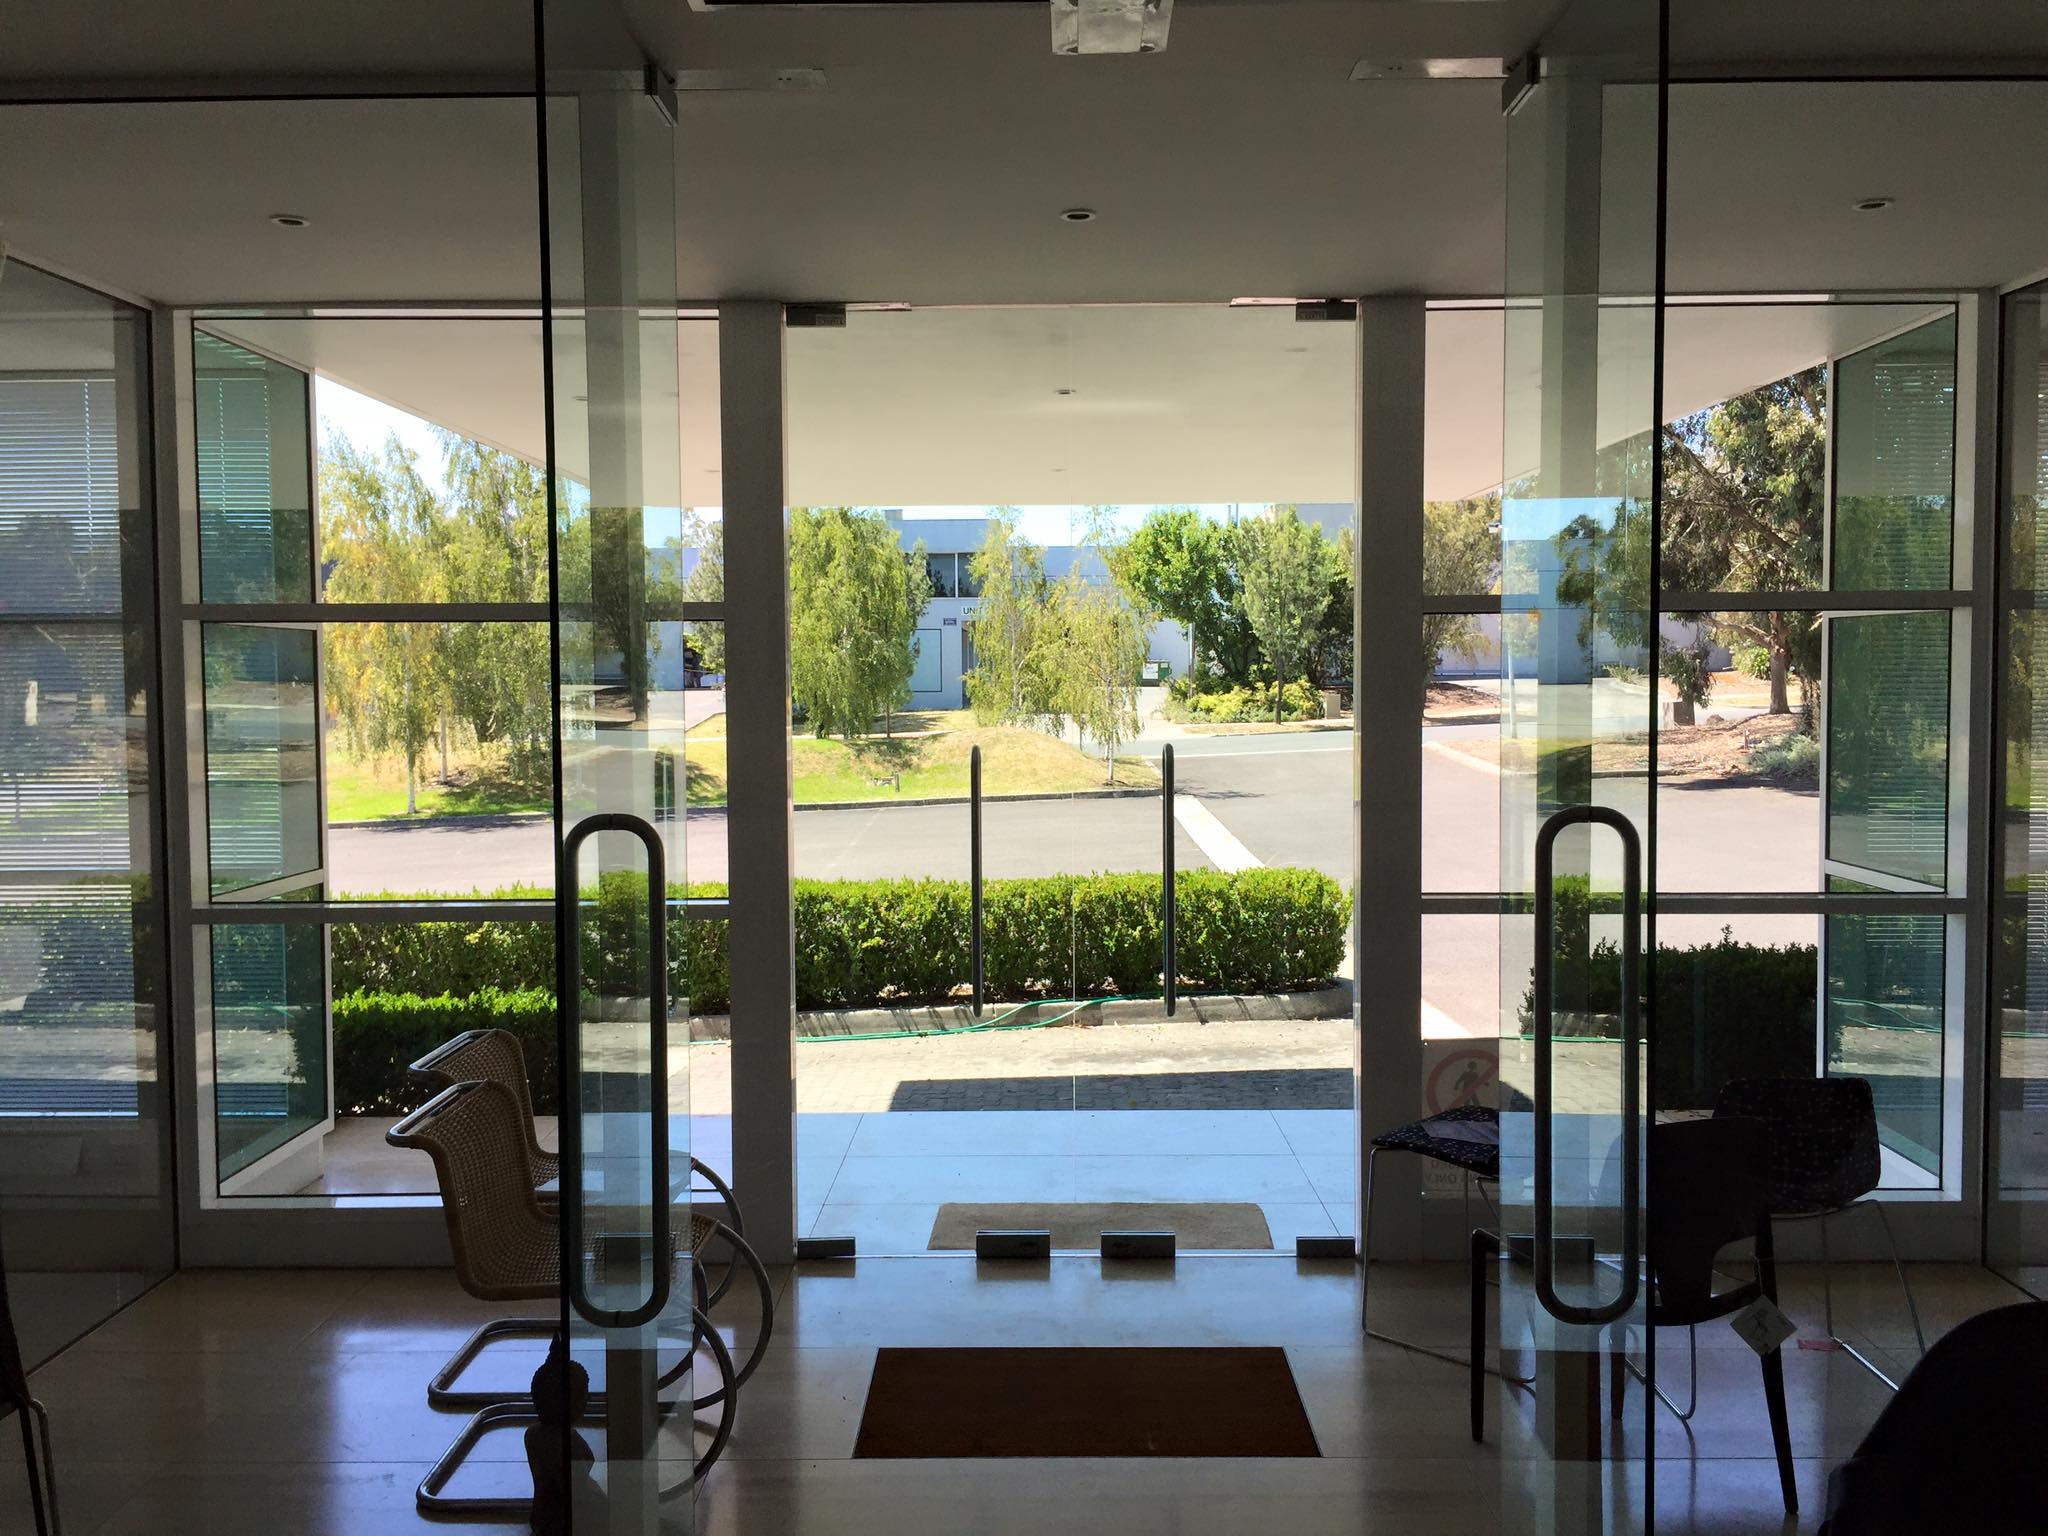 Melbourne, Yarra Valley commercial window cleaning Croydon